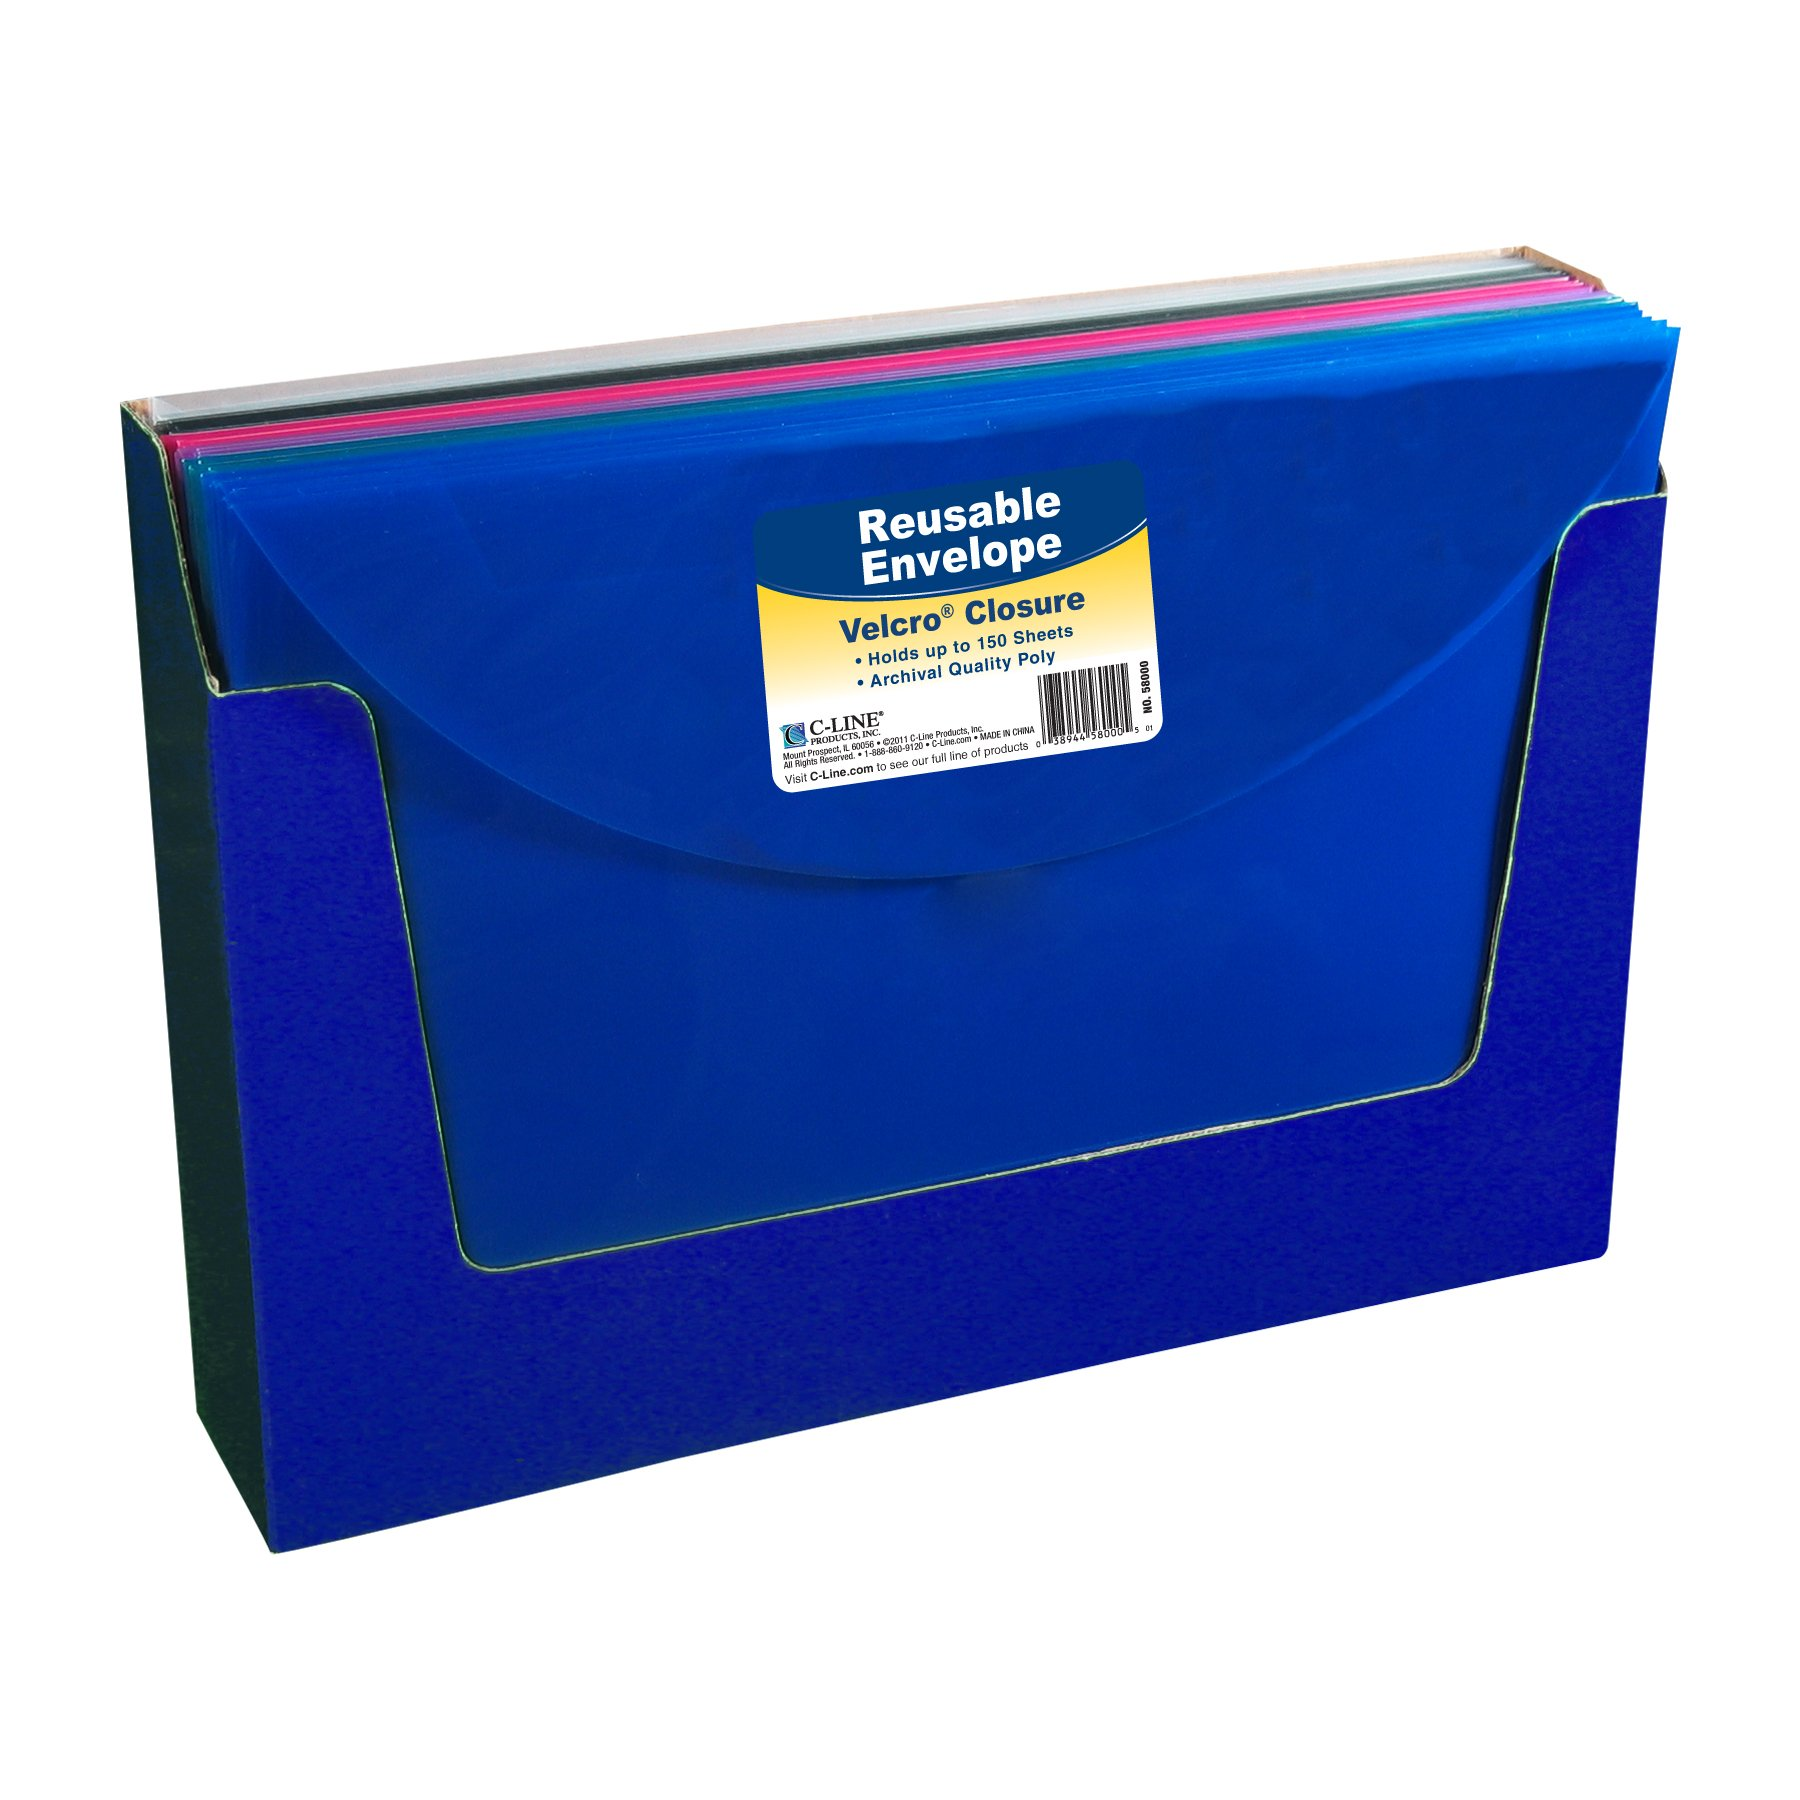 C-Line Reusable Poly Envelope, Hook and Loop Closure, Side Loading, Letter Size, Pack of 36, Assorted Colors (58000-36)